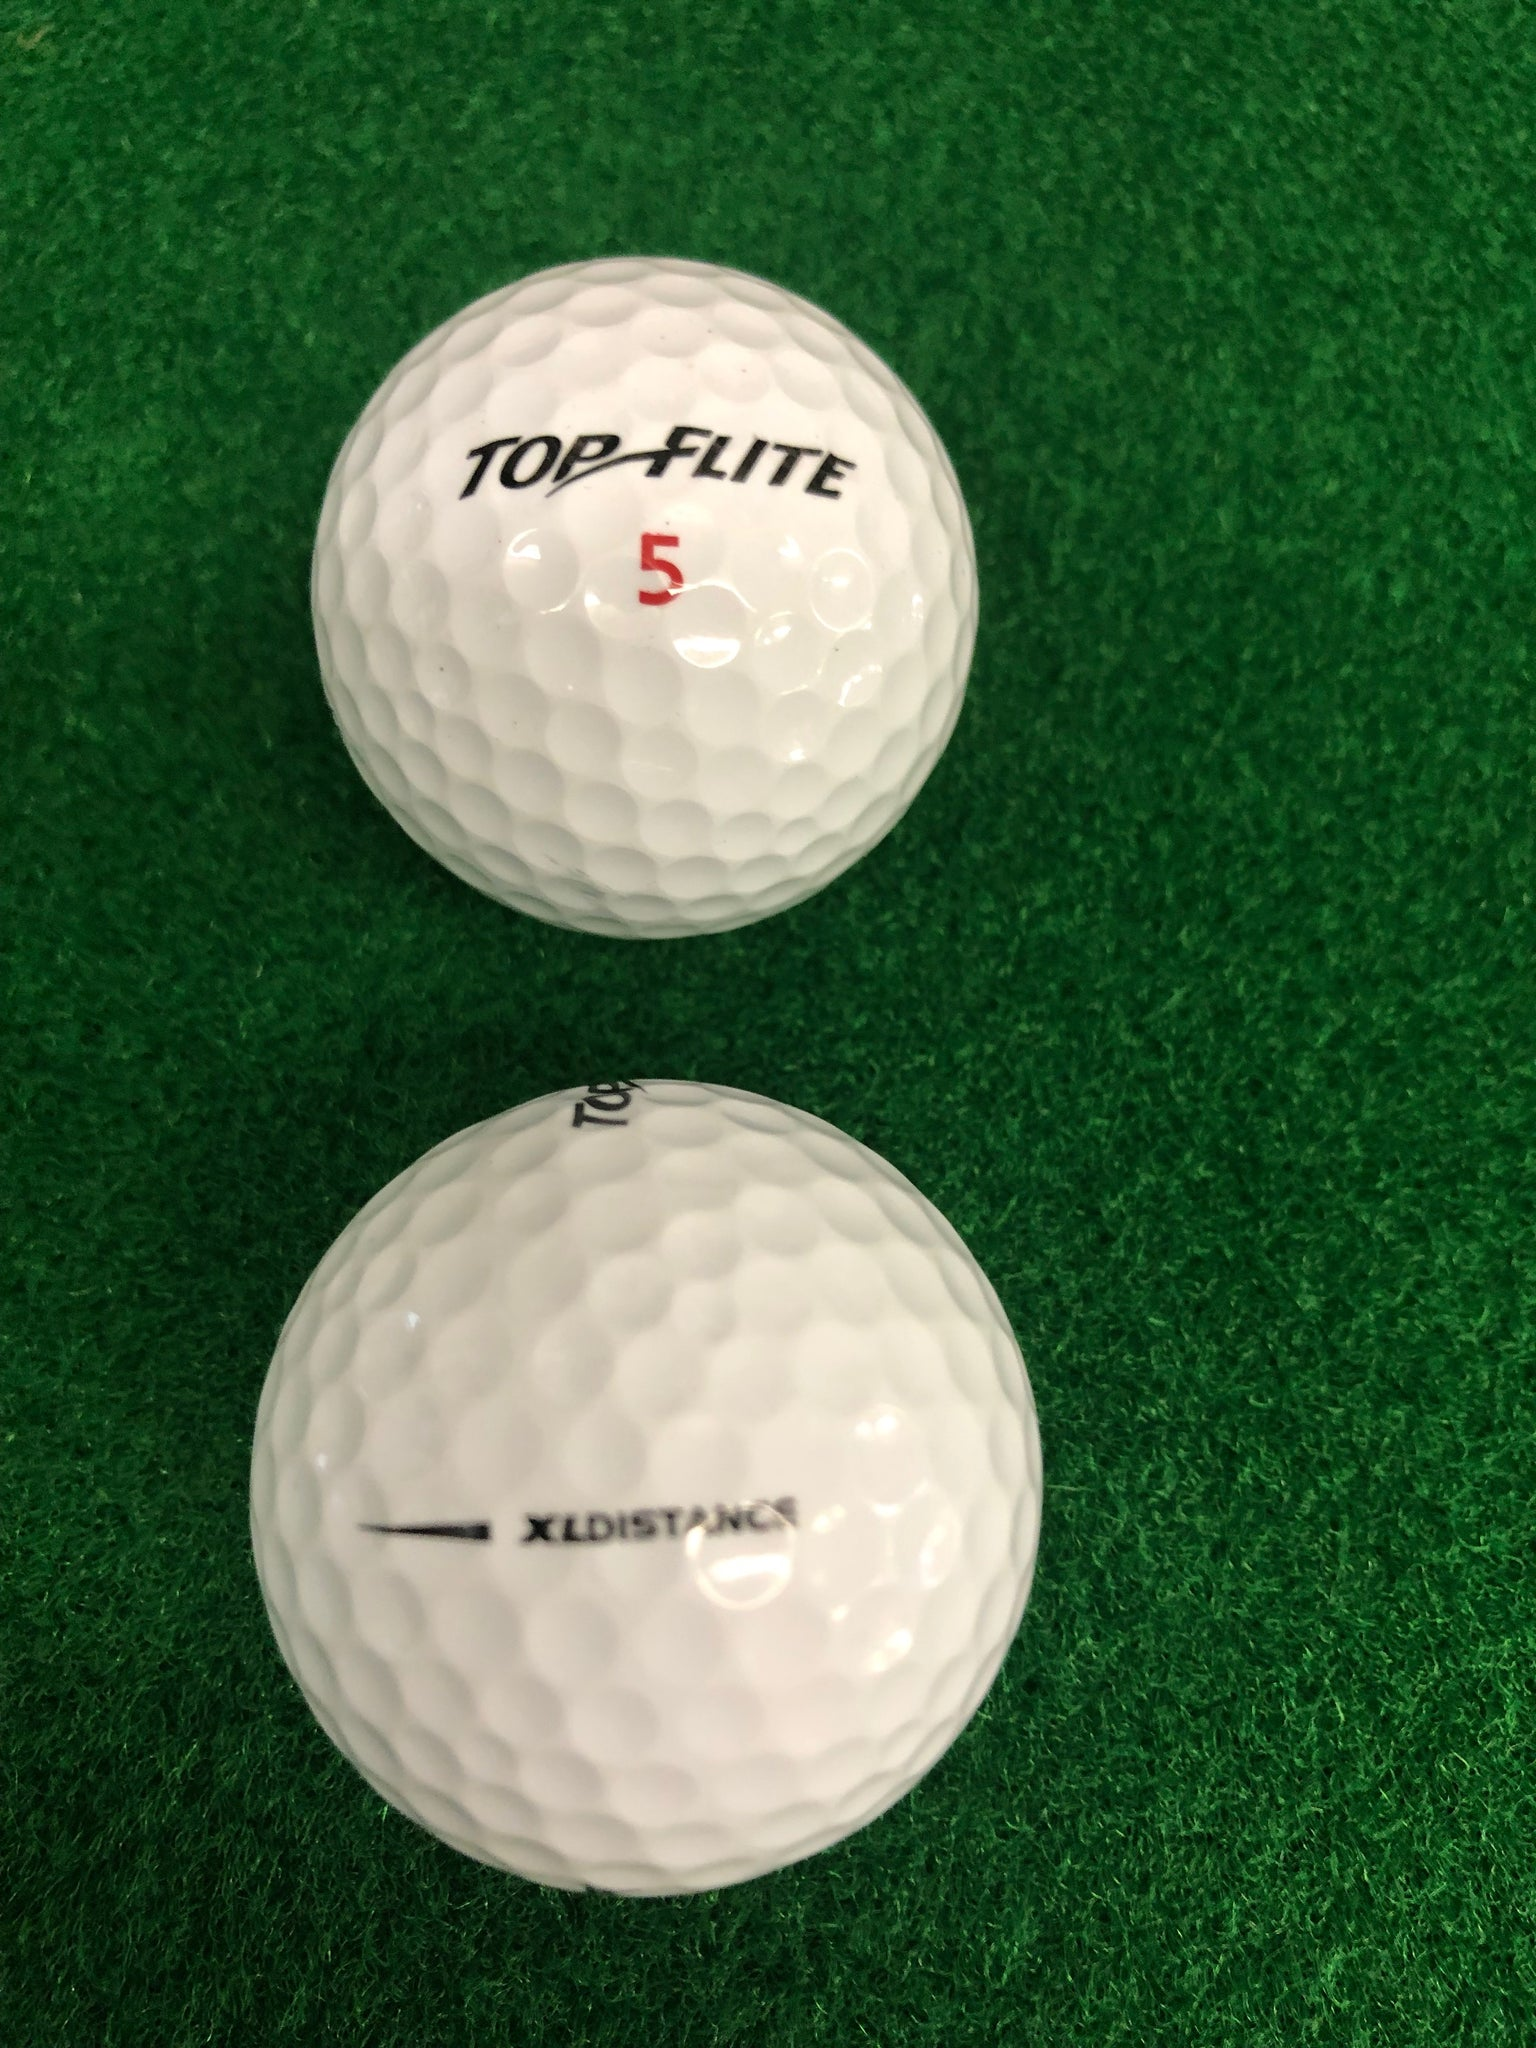 Top Flight Golf Balls